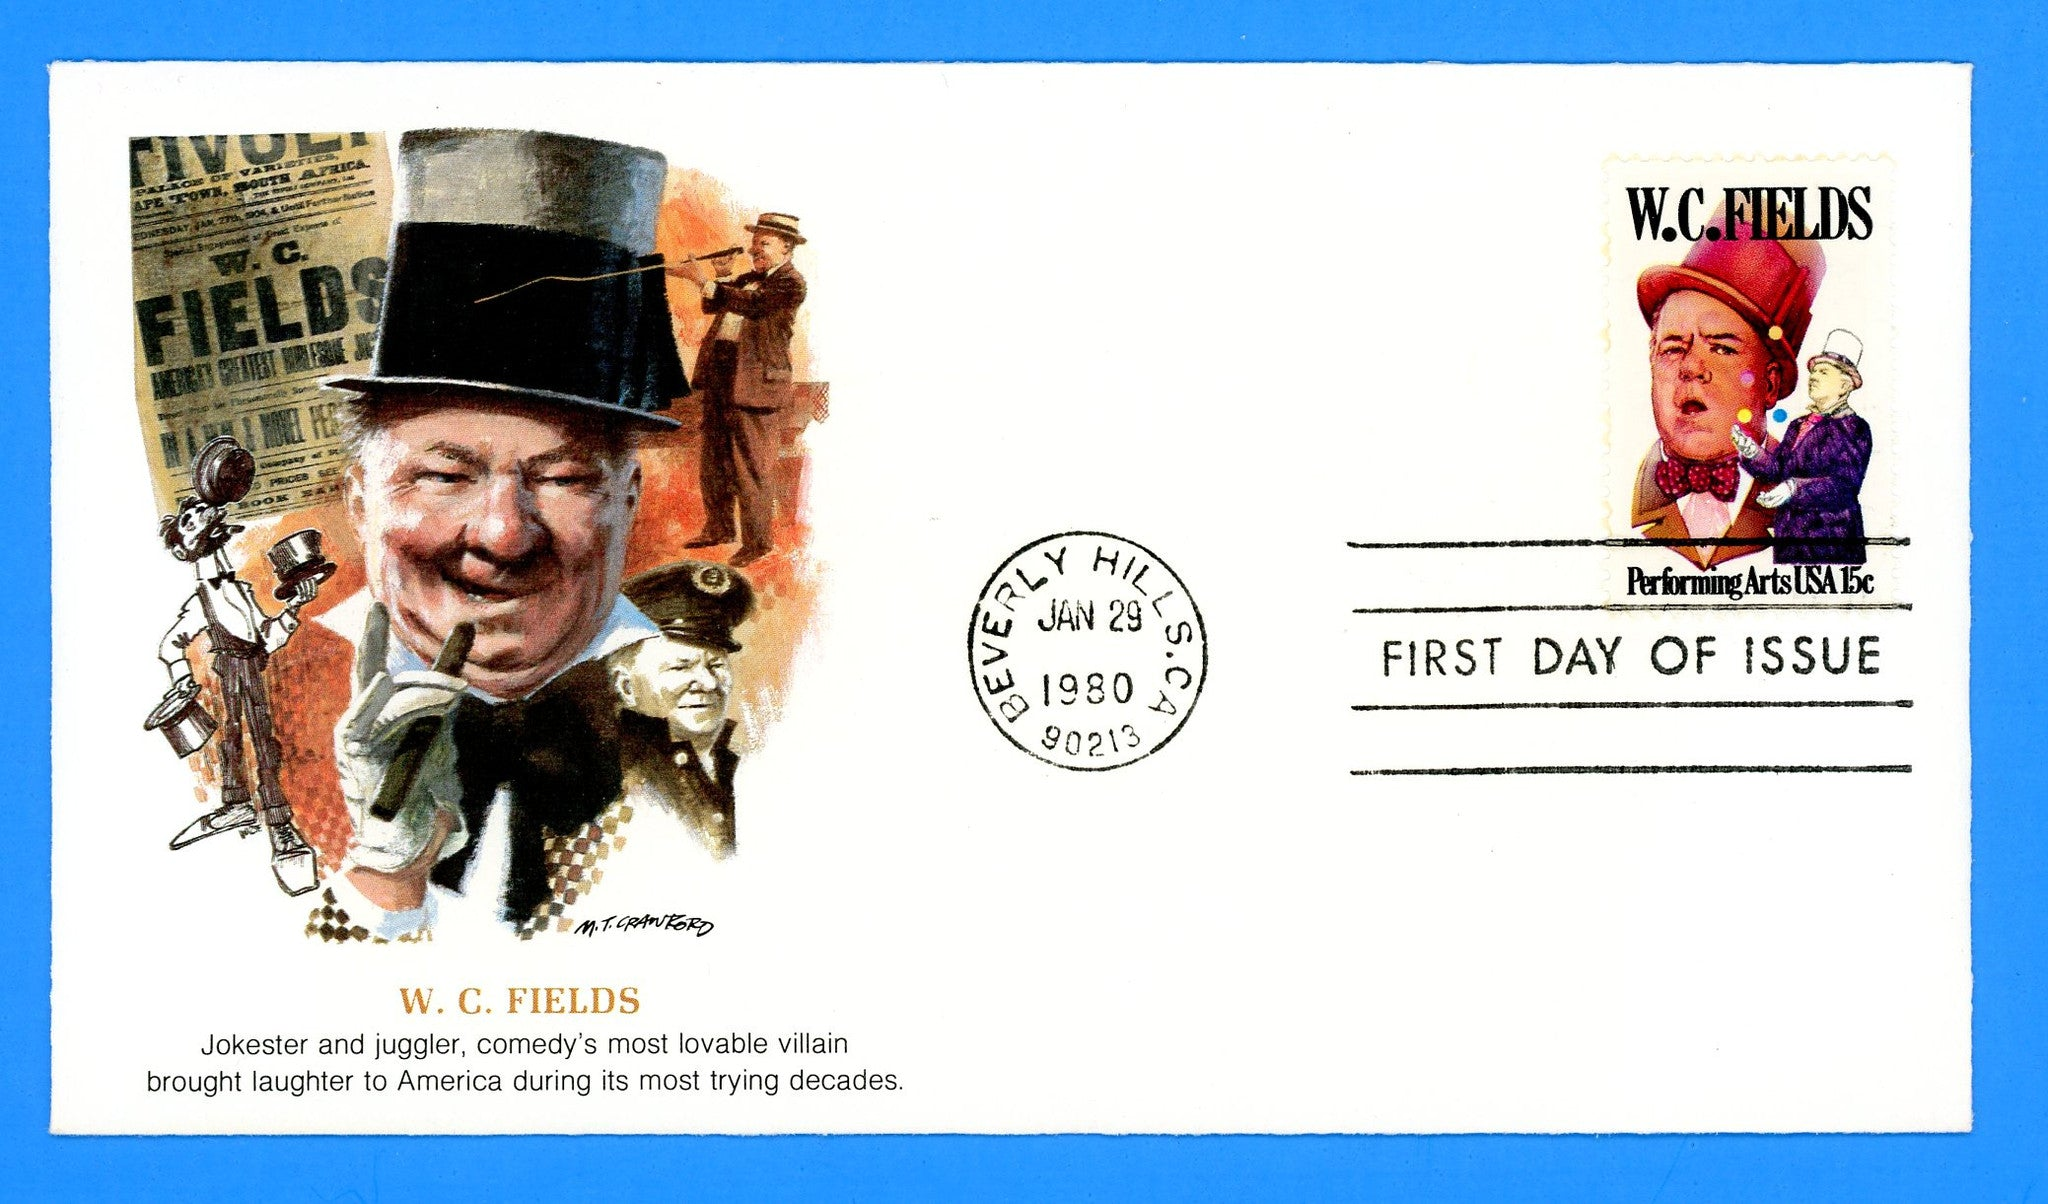 W.C. Fields, Performing Arts First Day Cover by Fleetwood